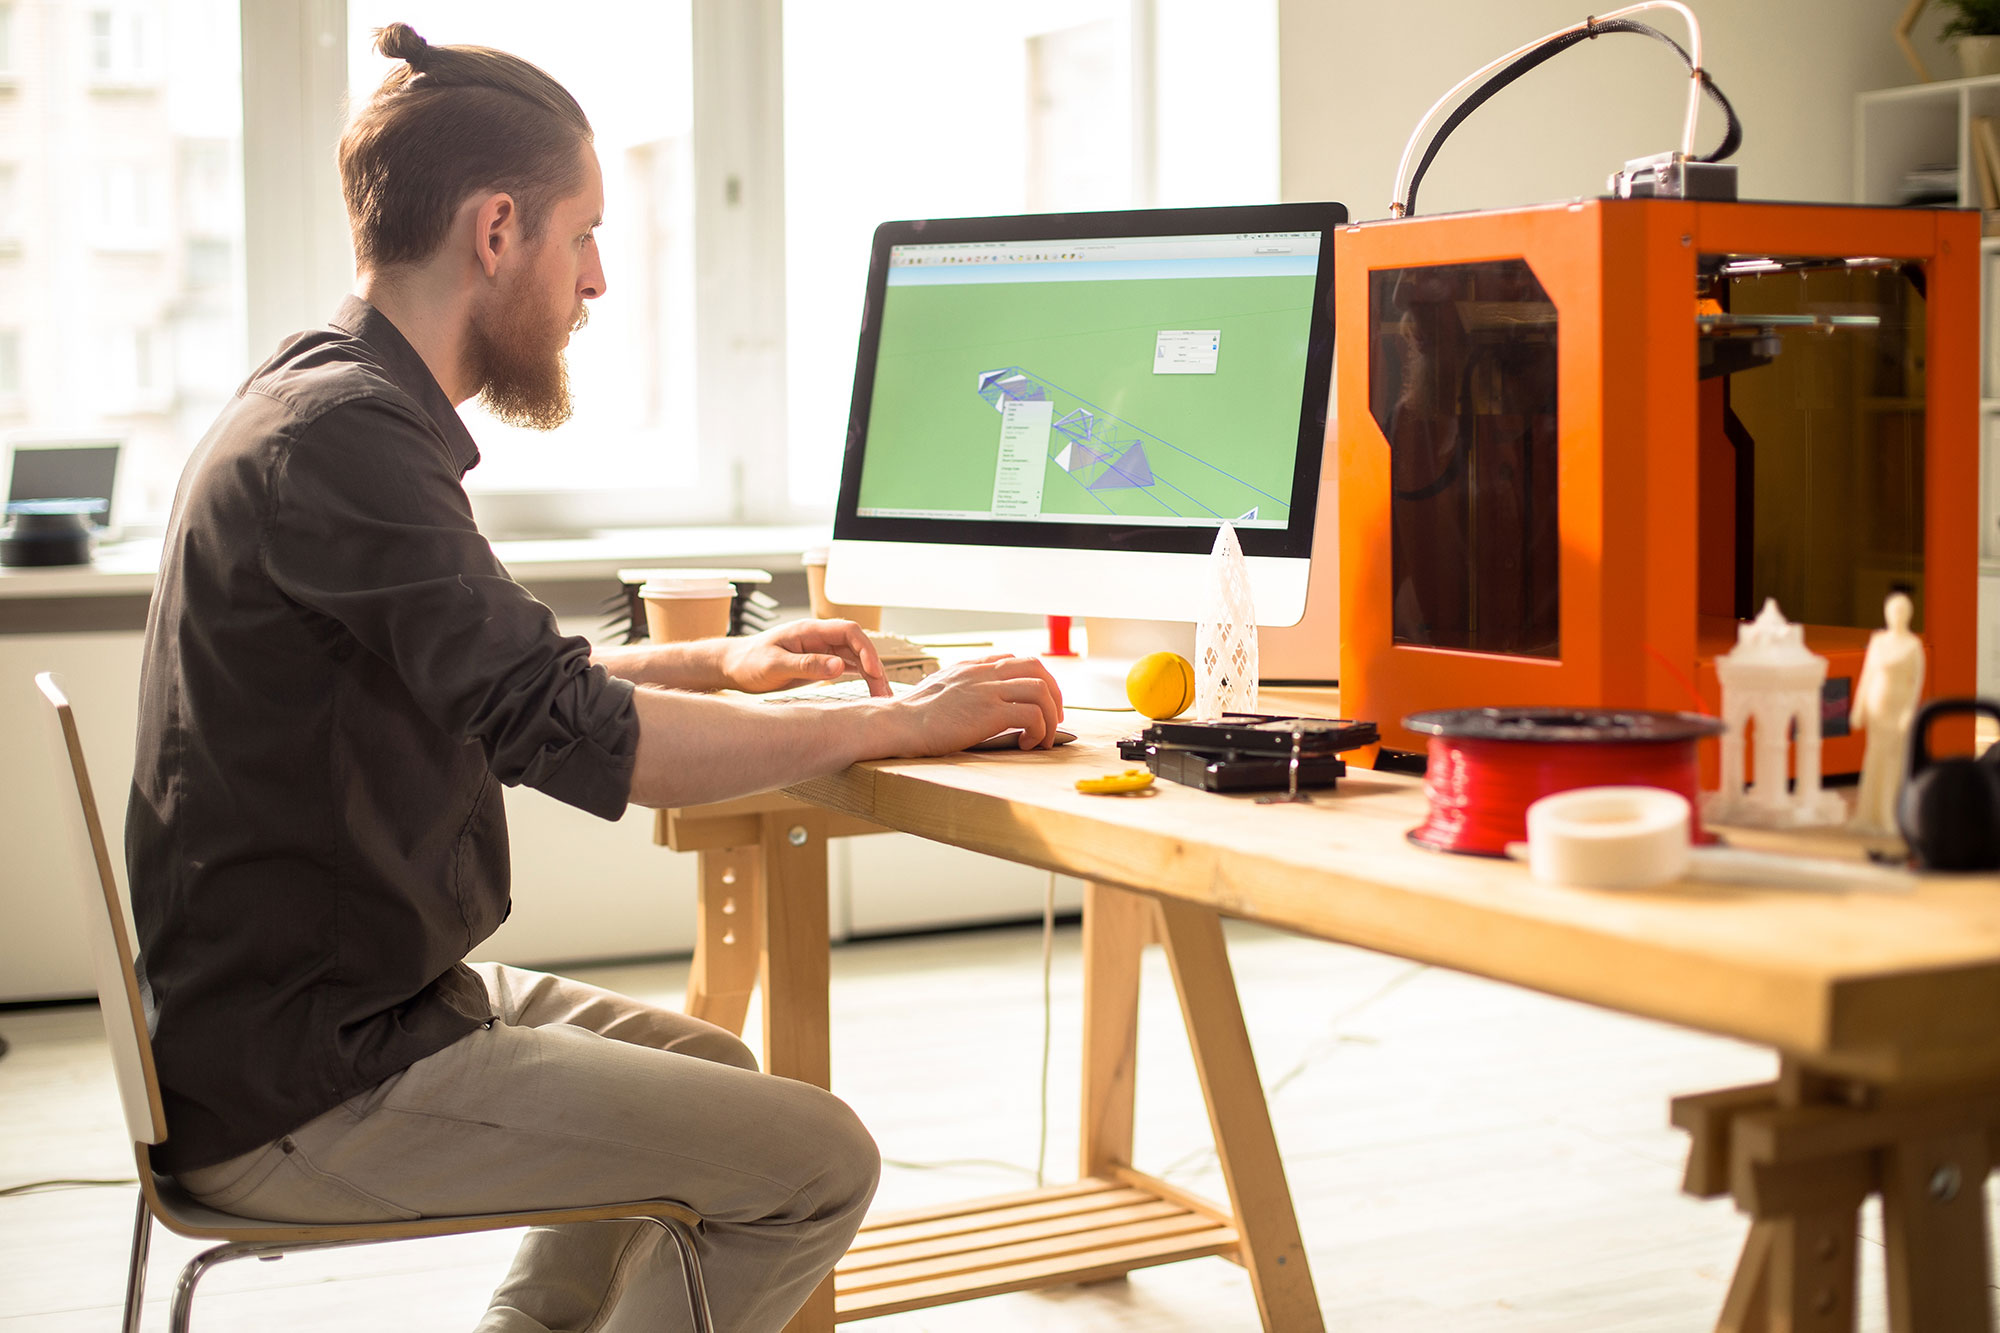 man working with 3D printer